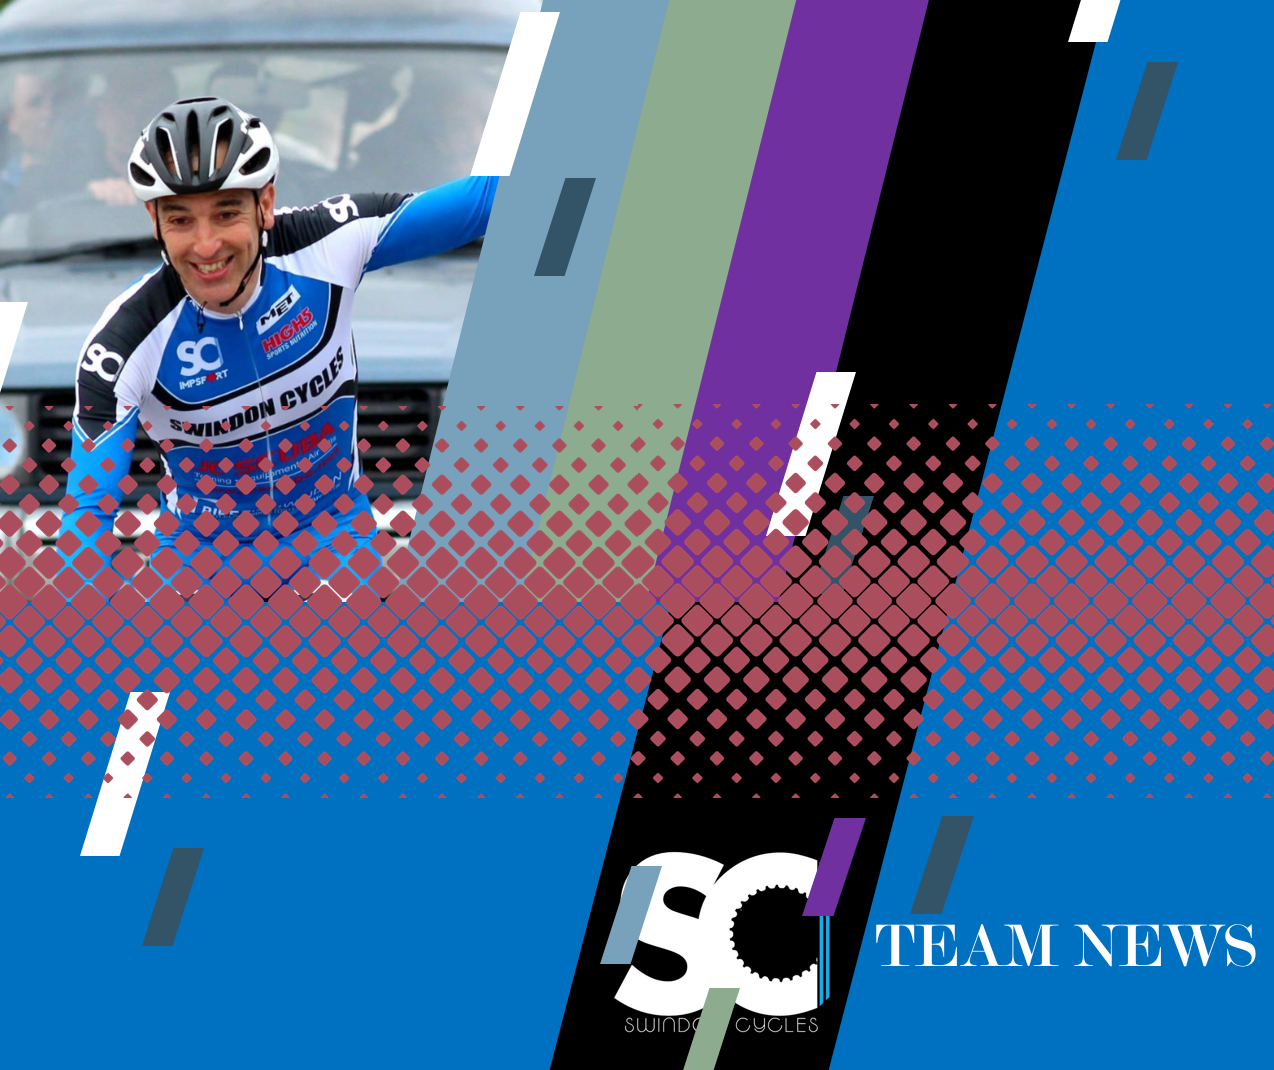 SWINDON CYCLES TEAM NEWS